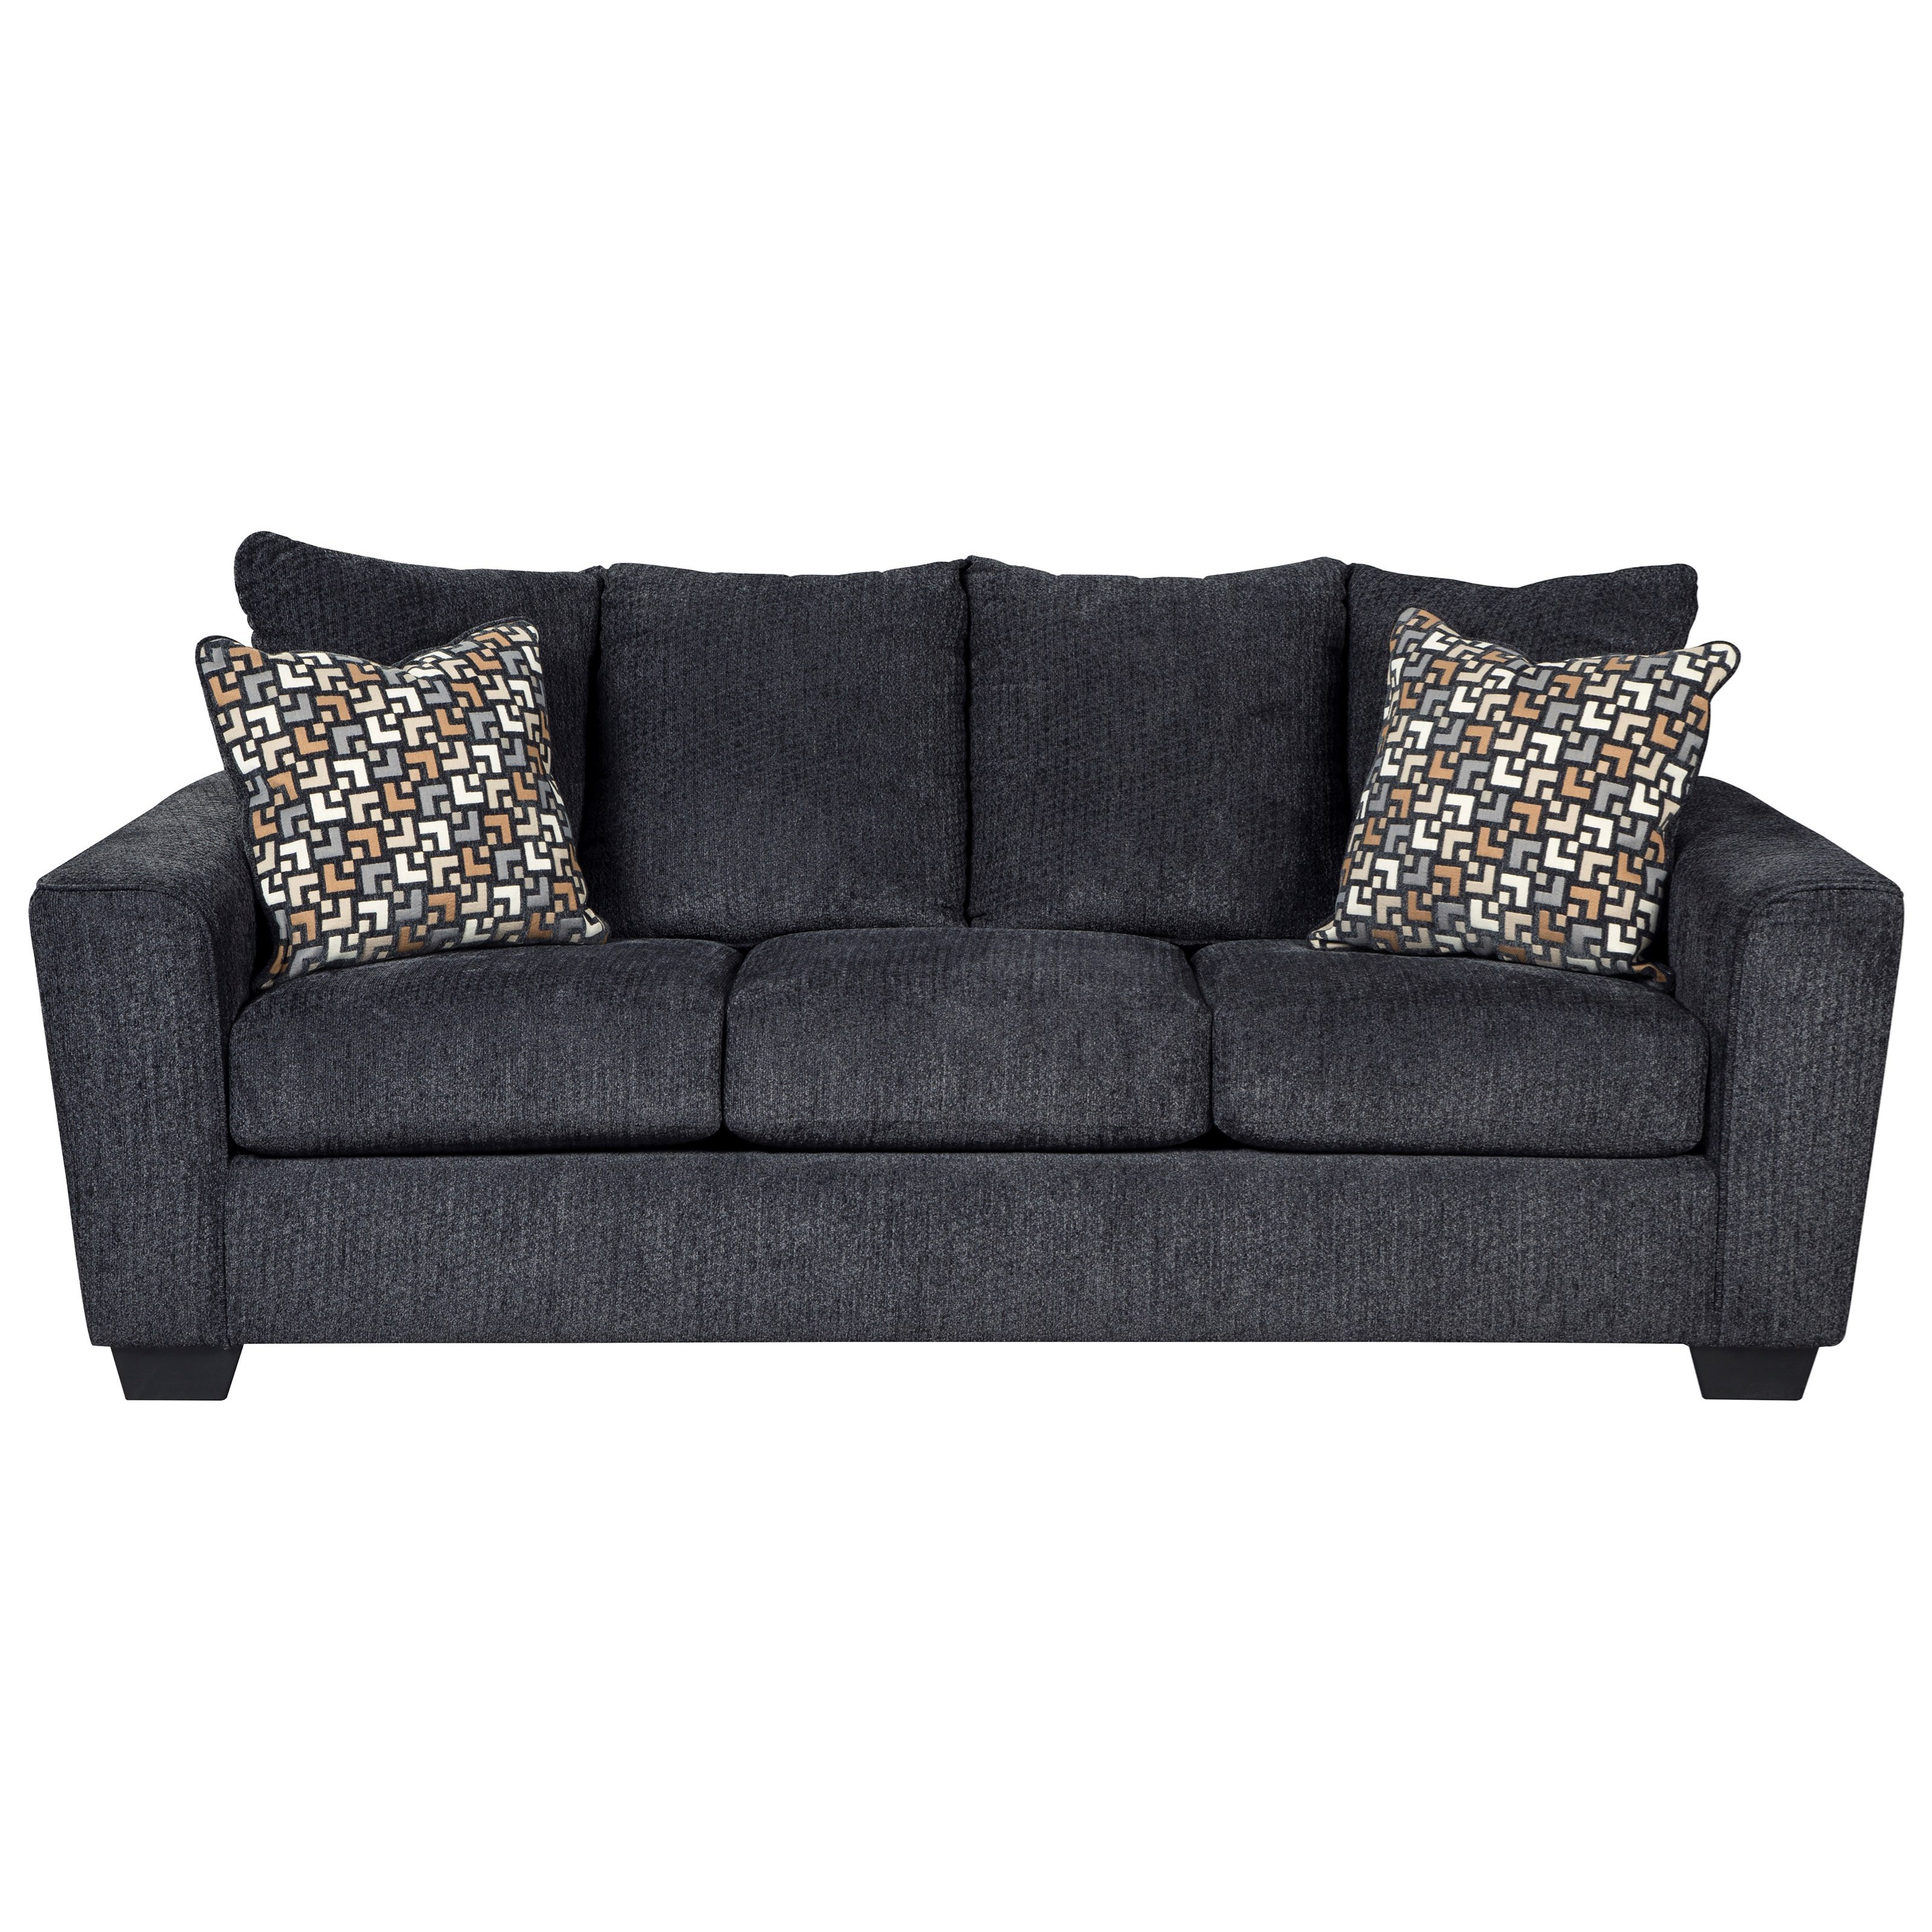 Benchcraft Wixon Sofa With Rounded Track Arms Value City Furniture Sofas